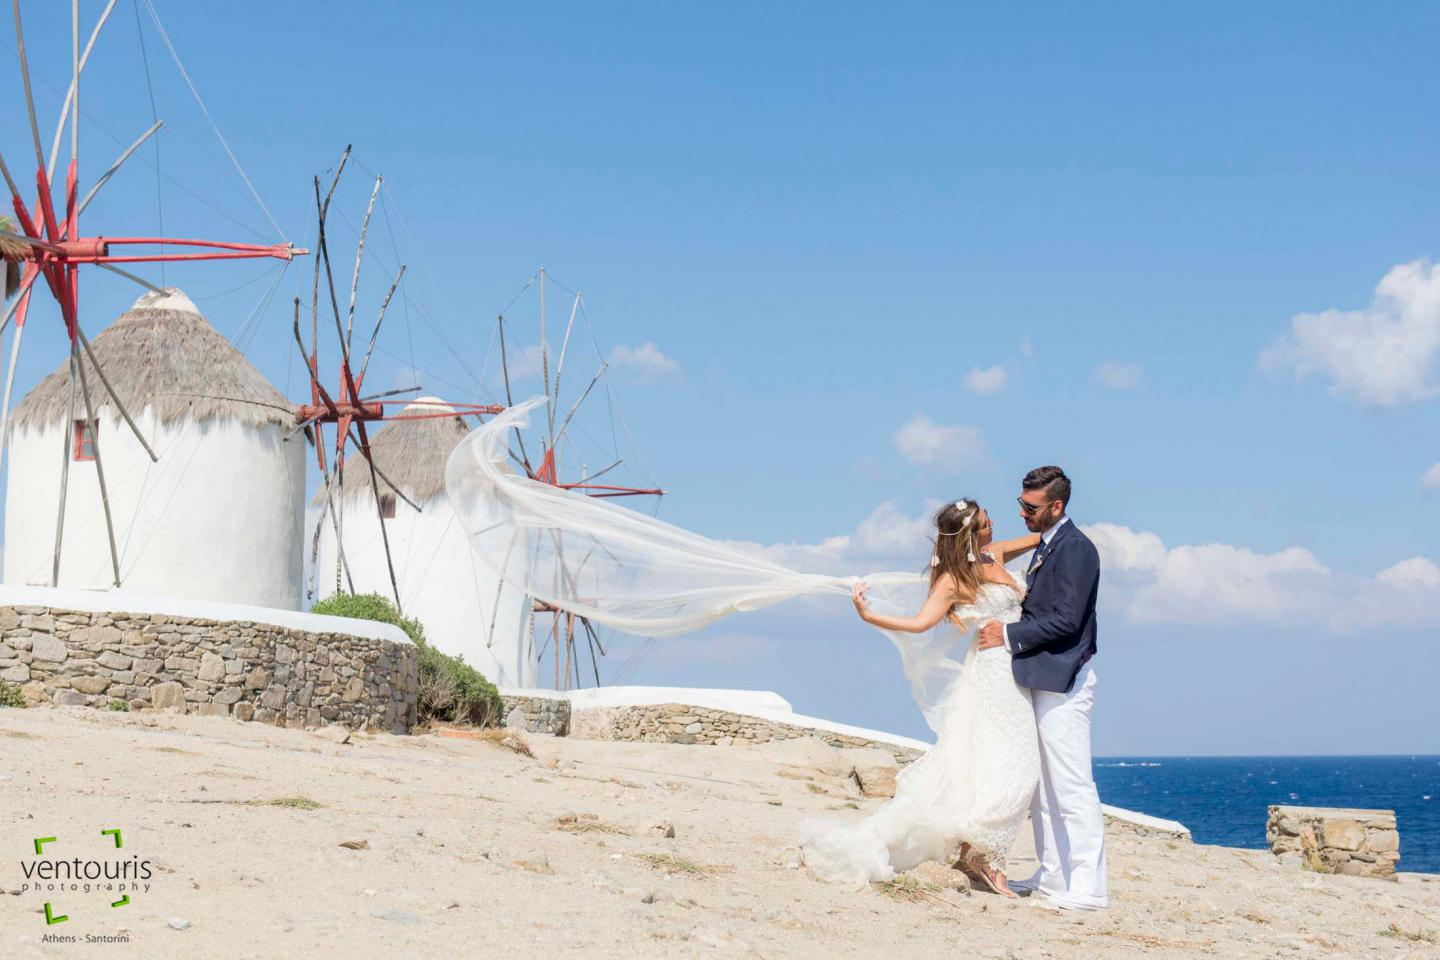 Wedding Photography Greece: Weddings In Santorini And Other Greek Islands By Ventouris